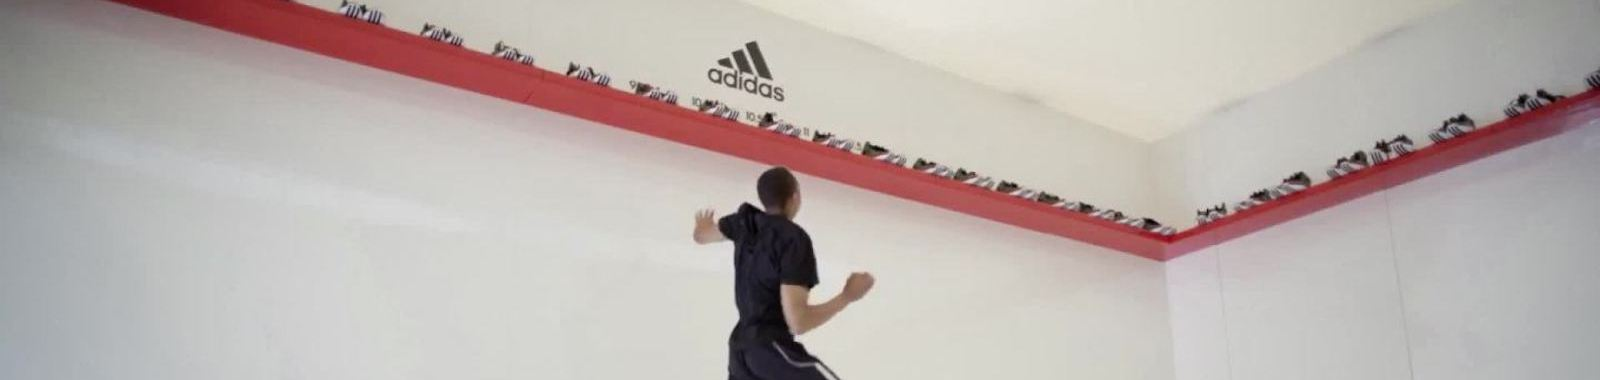 adidas-basketball-eye